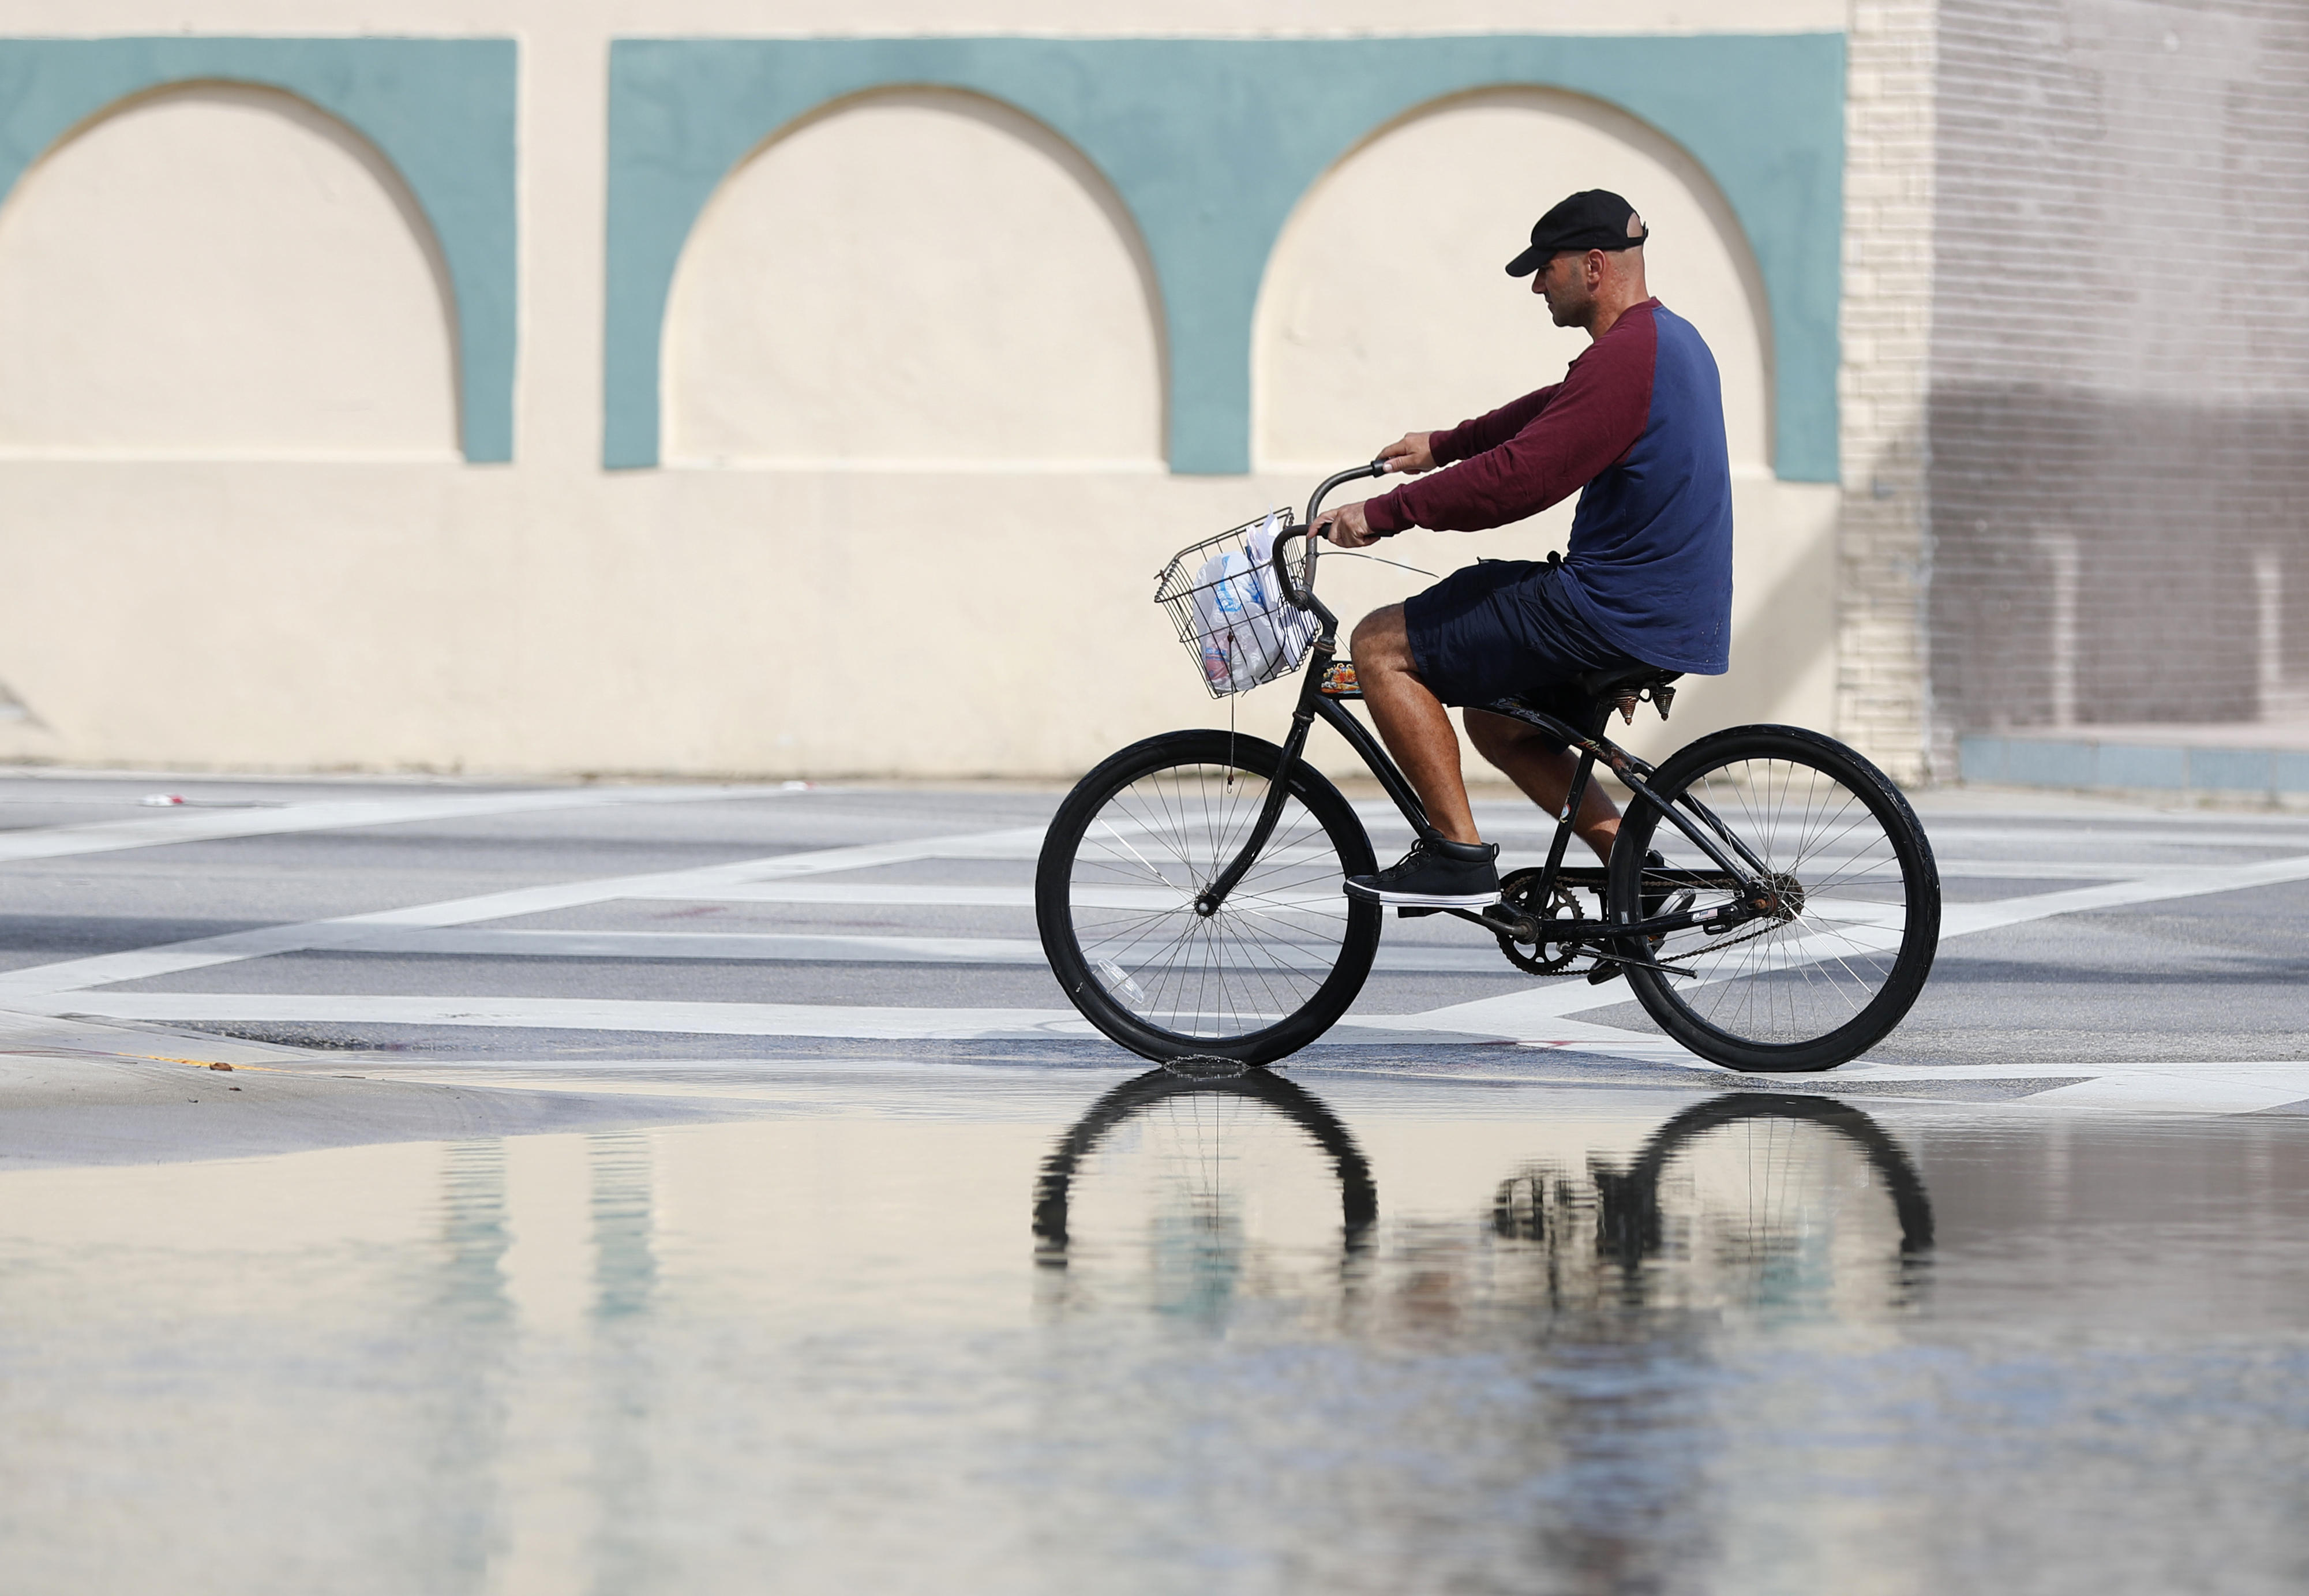 A cyclist rides past an area flooded during a King Tide, an especially high tide, Tuesday, Oct. 9, 2018, in Miami.